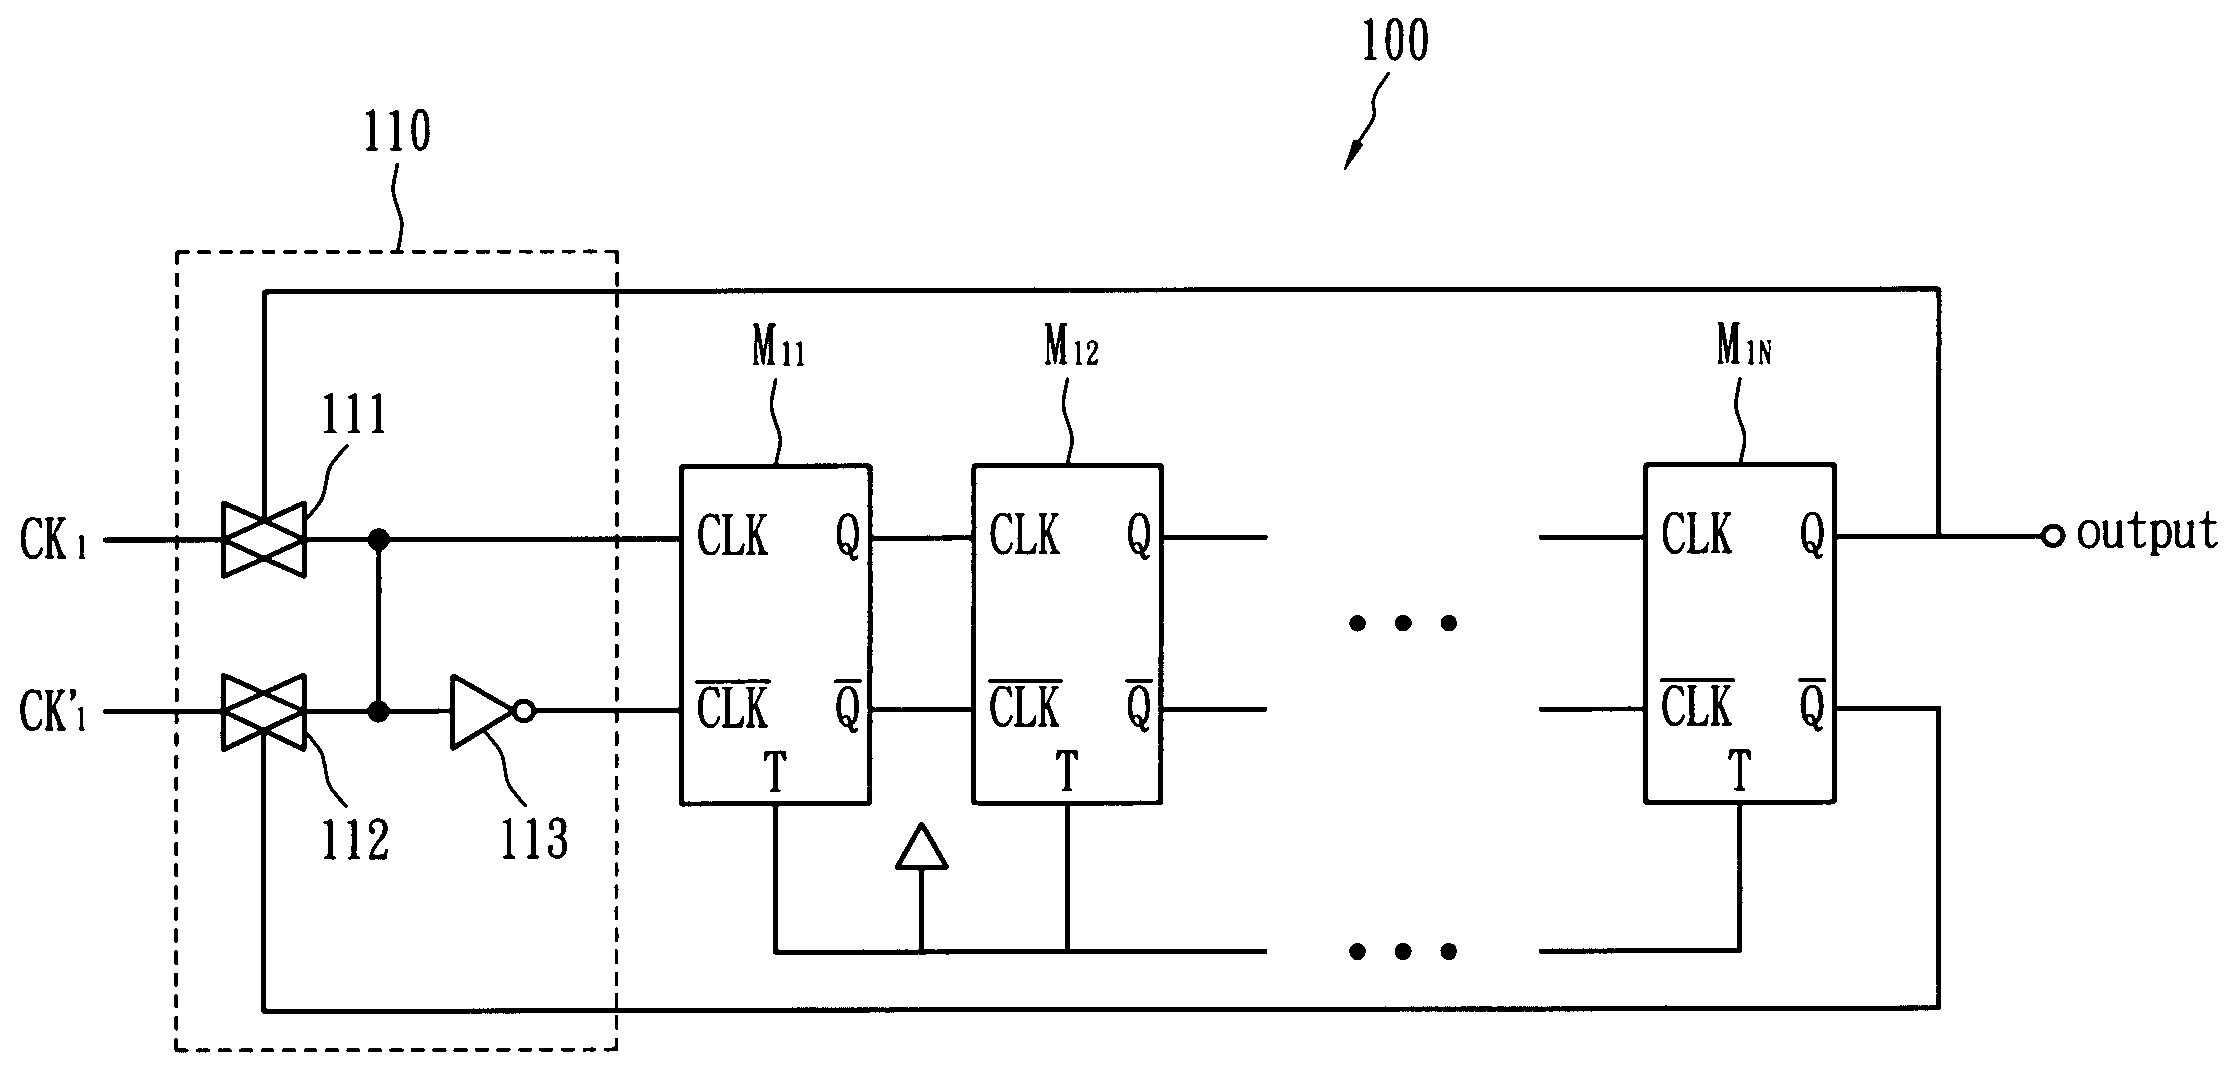 Analytics For Us Patent No 7680238 Frequency Divider Circuit Logic Diagram T Flip Flop Of The First And Input Inverter Second Transmission Gate Connects Inverted Signal Clock Output